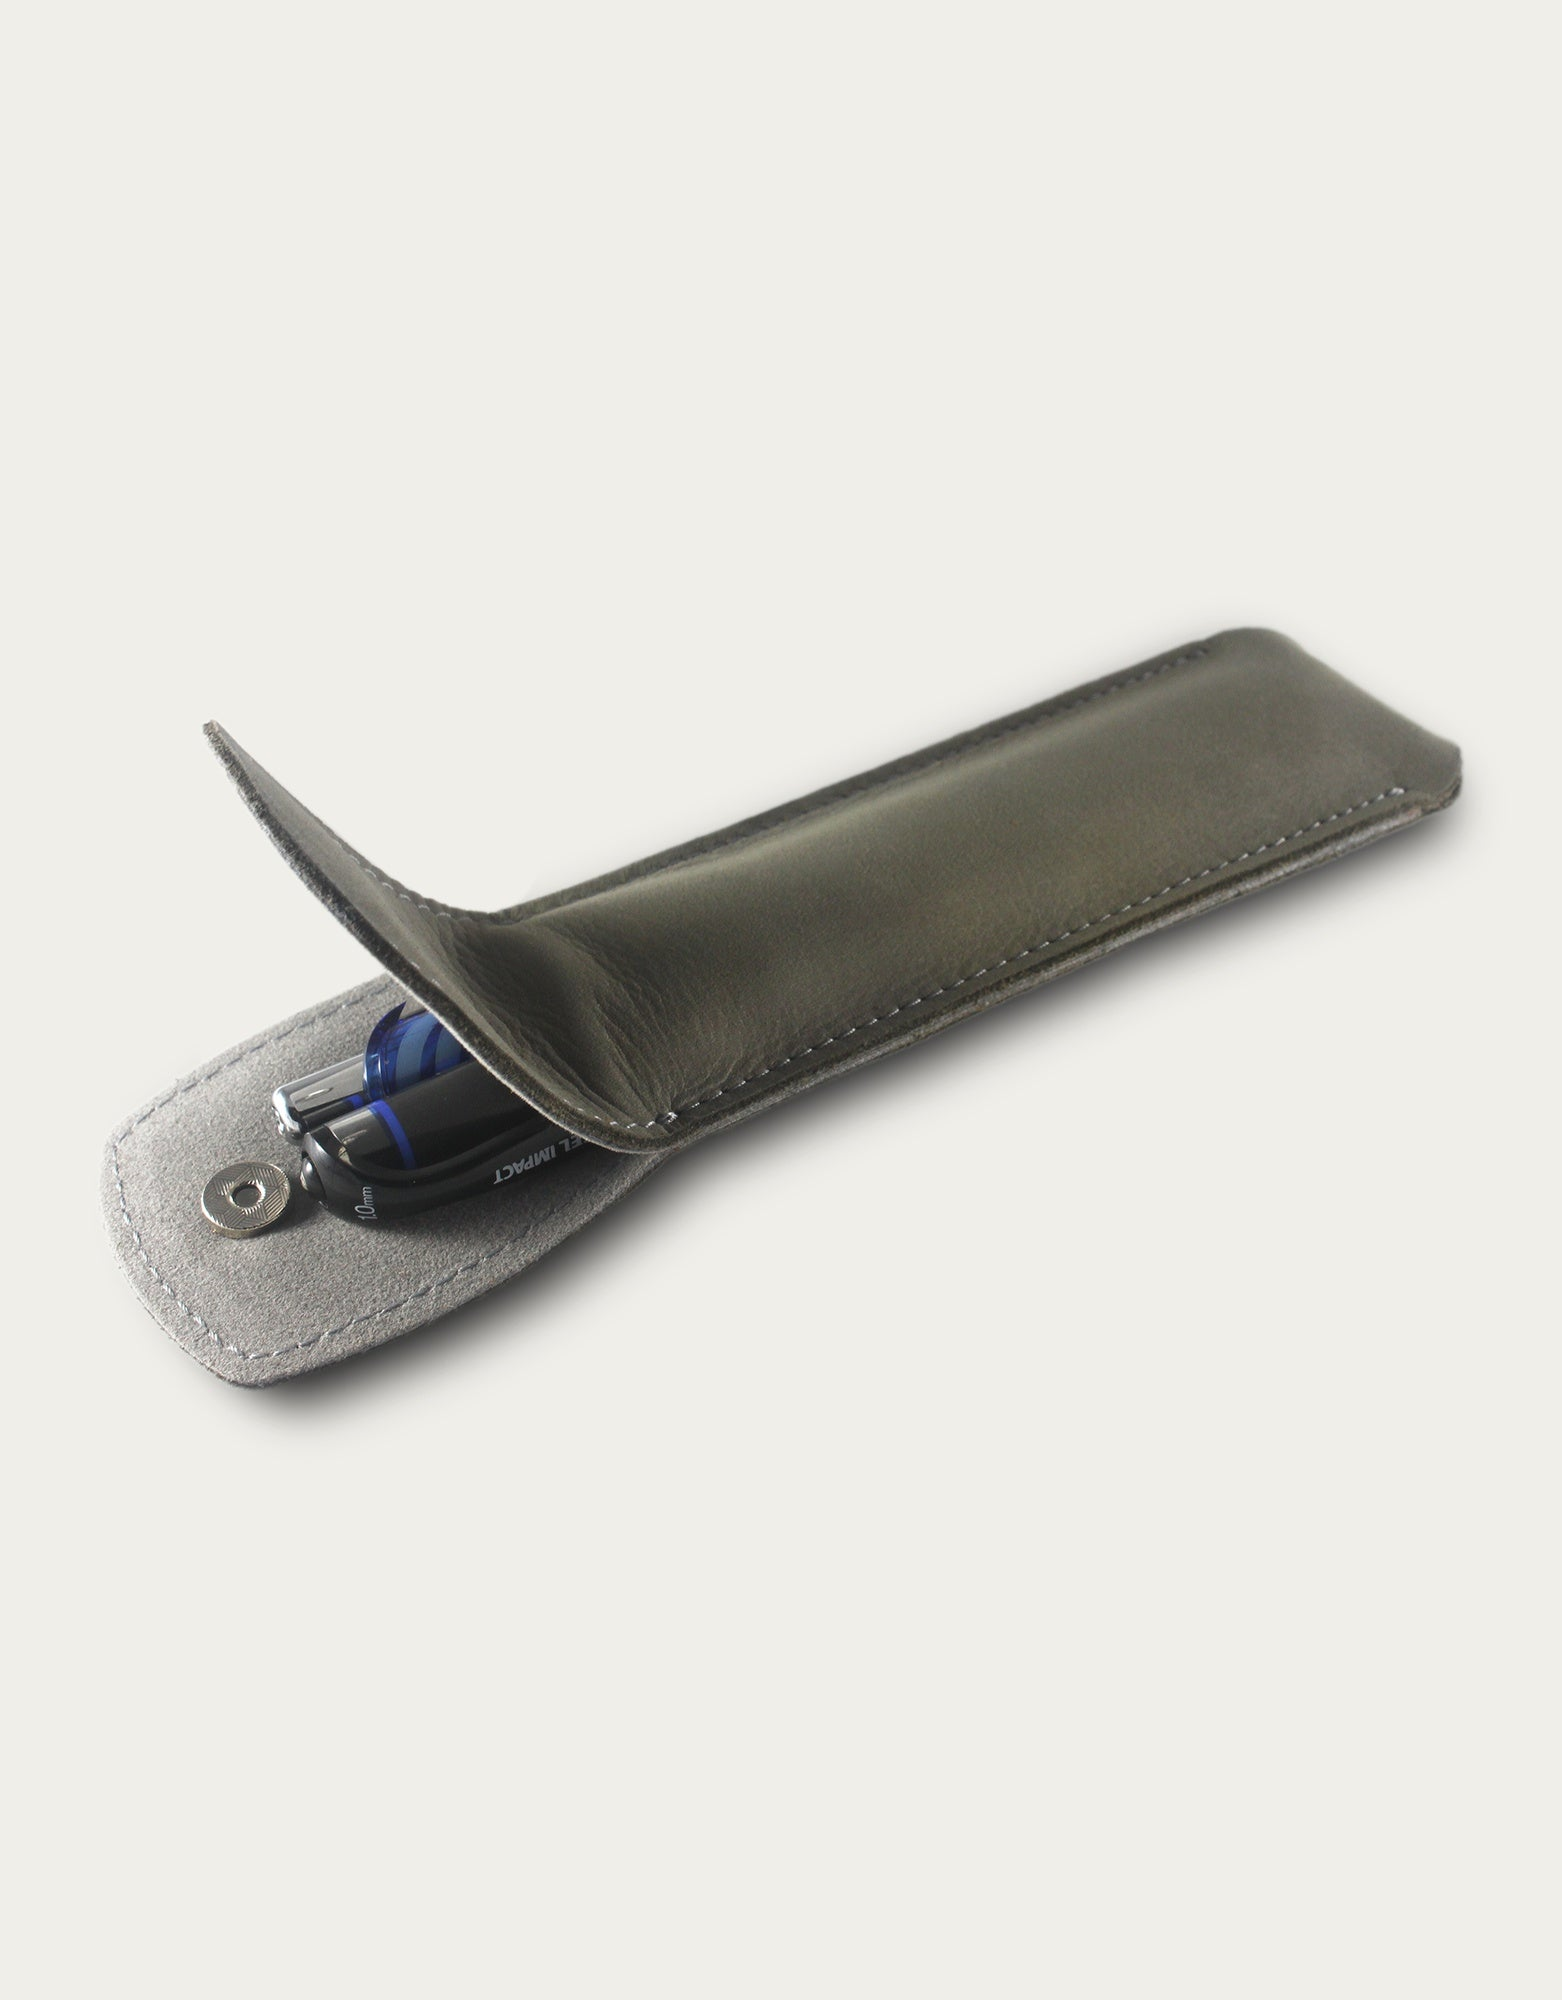 Spoon Pen Case - Grey